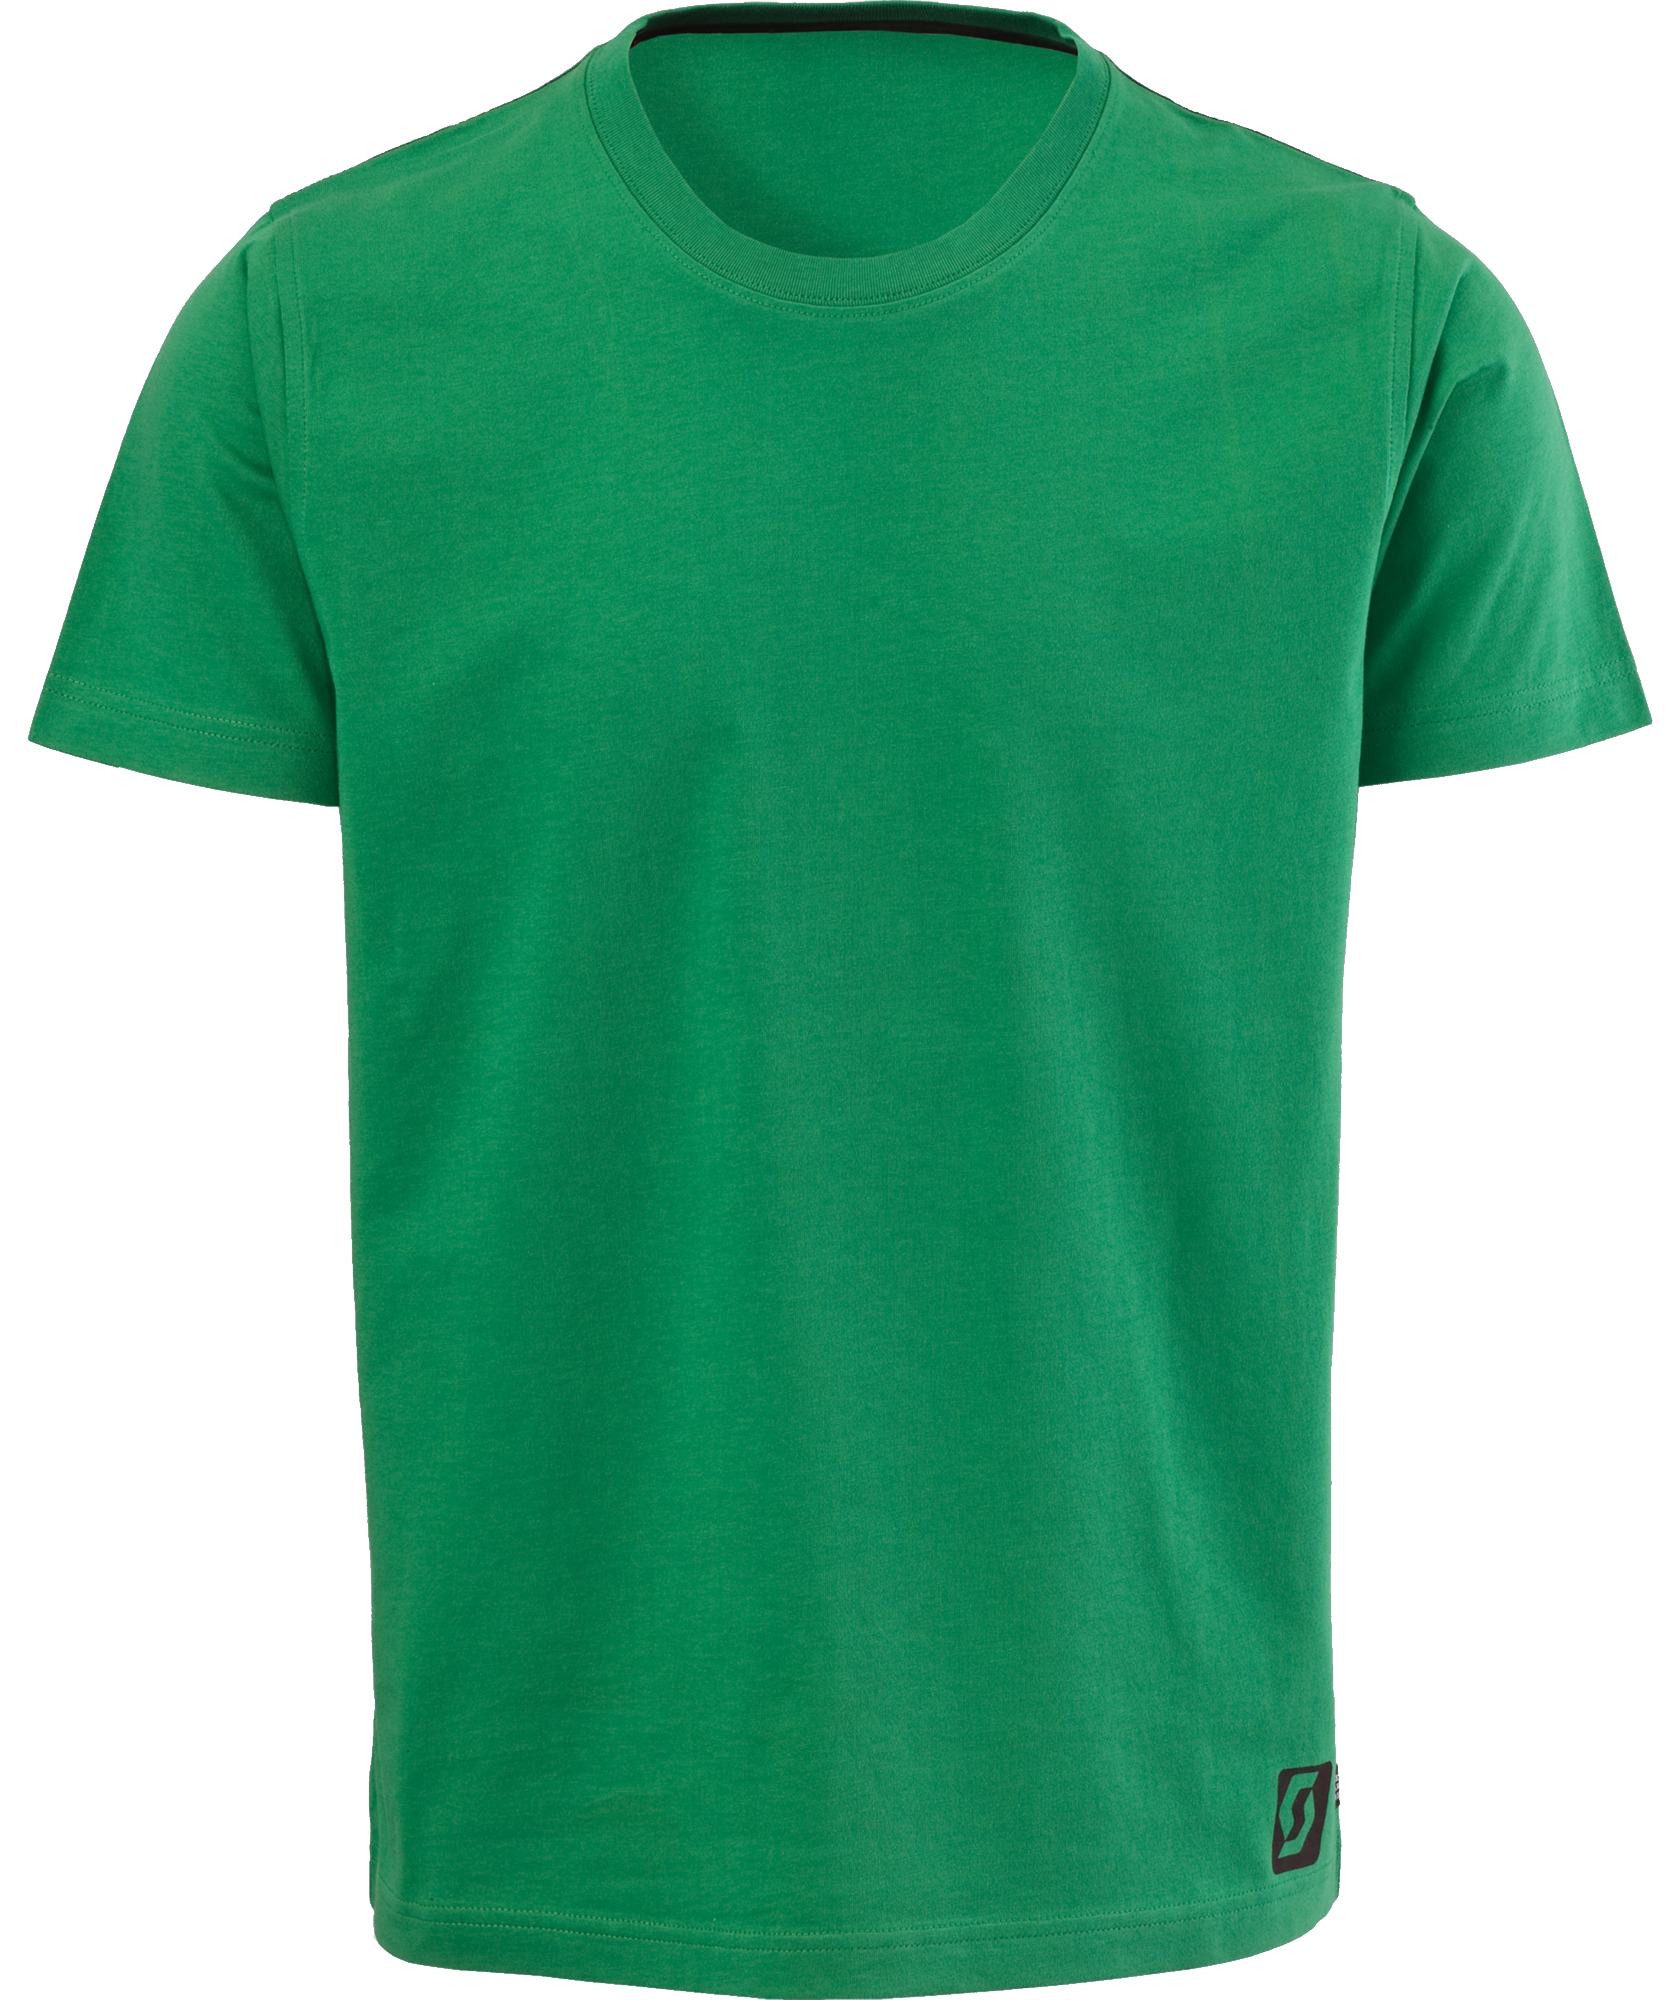 Green T Shirt Best Picture 25322